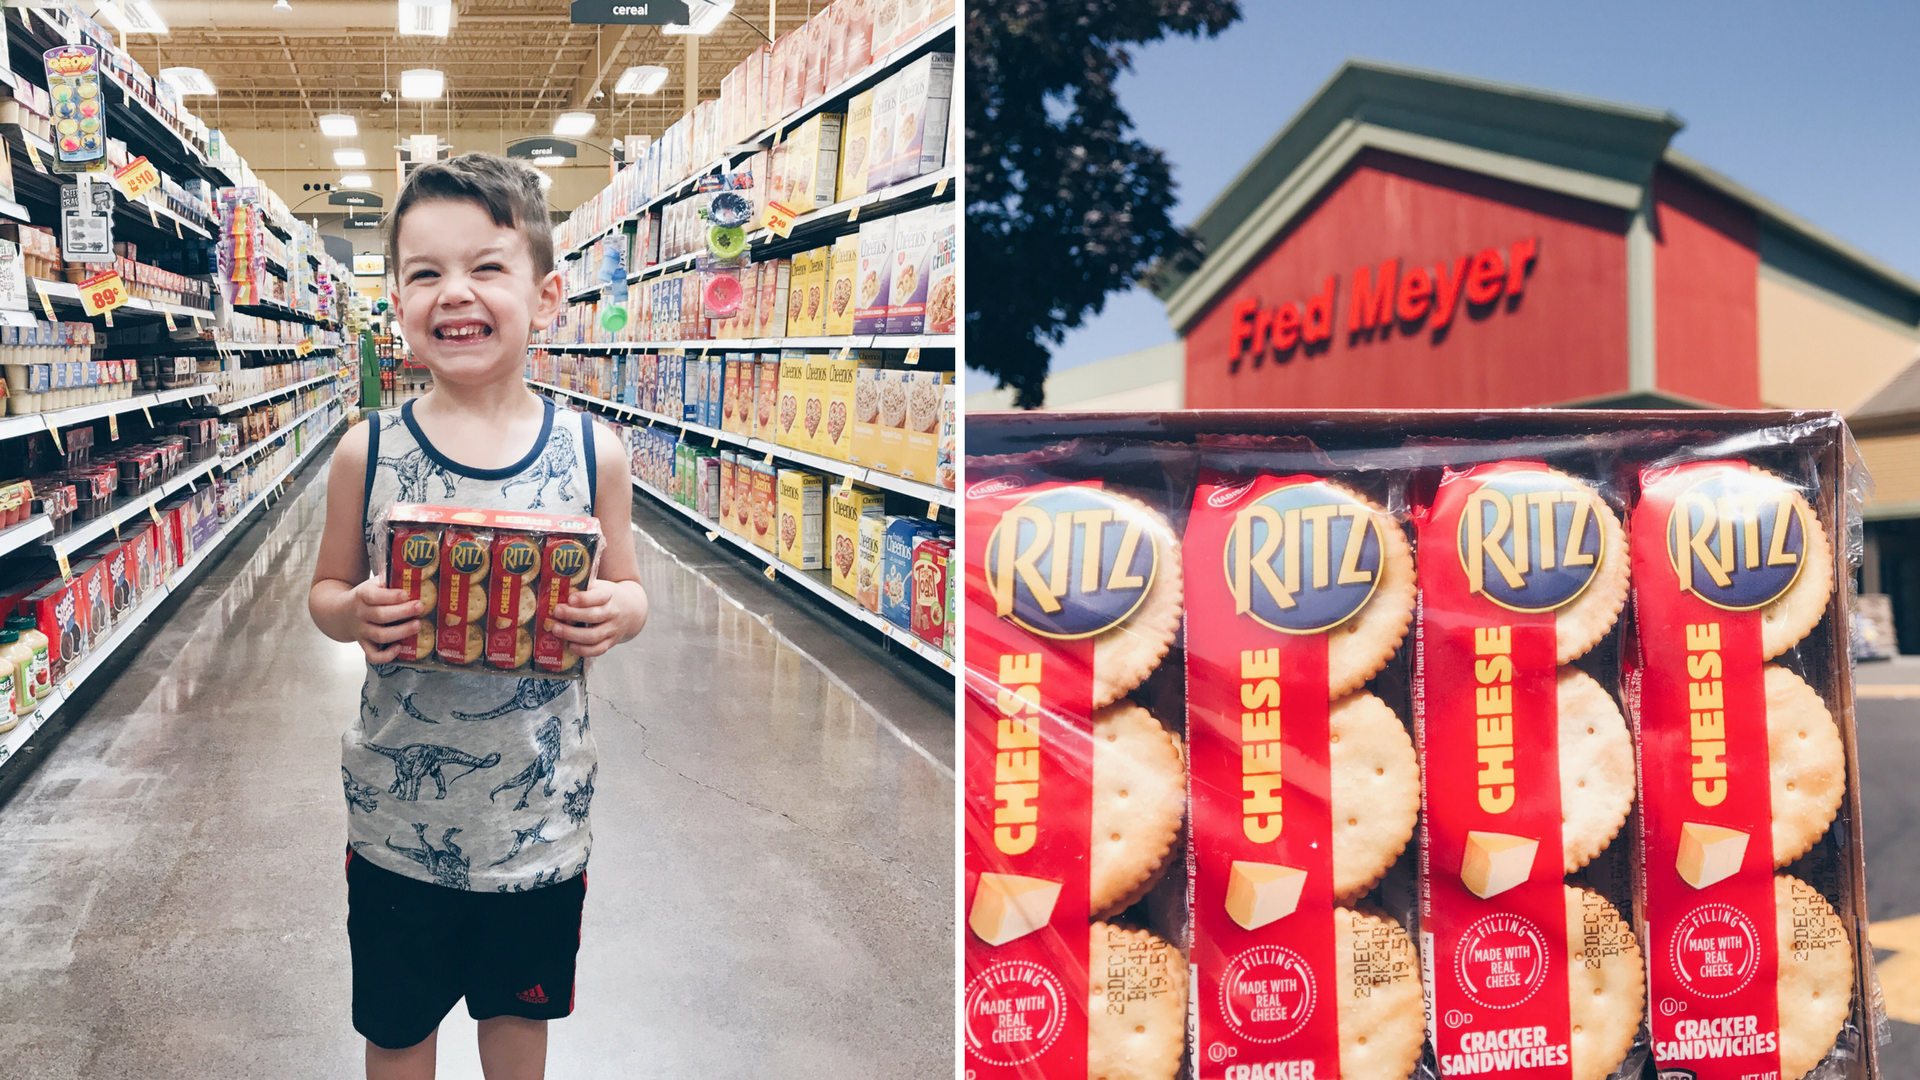 4 Ways to Make Snack Time Interactive | Homeschool Snack Time | On-the-go snacks for kids | @Ritzcrackers #AD #RITZfilledbacktoschool